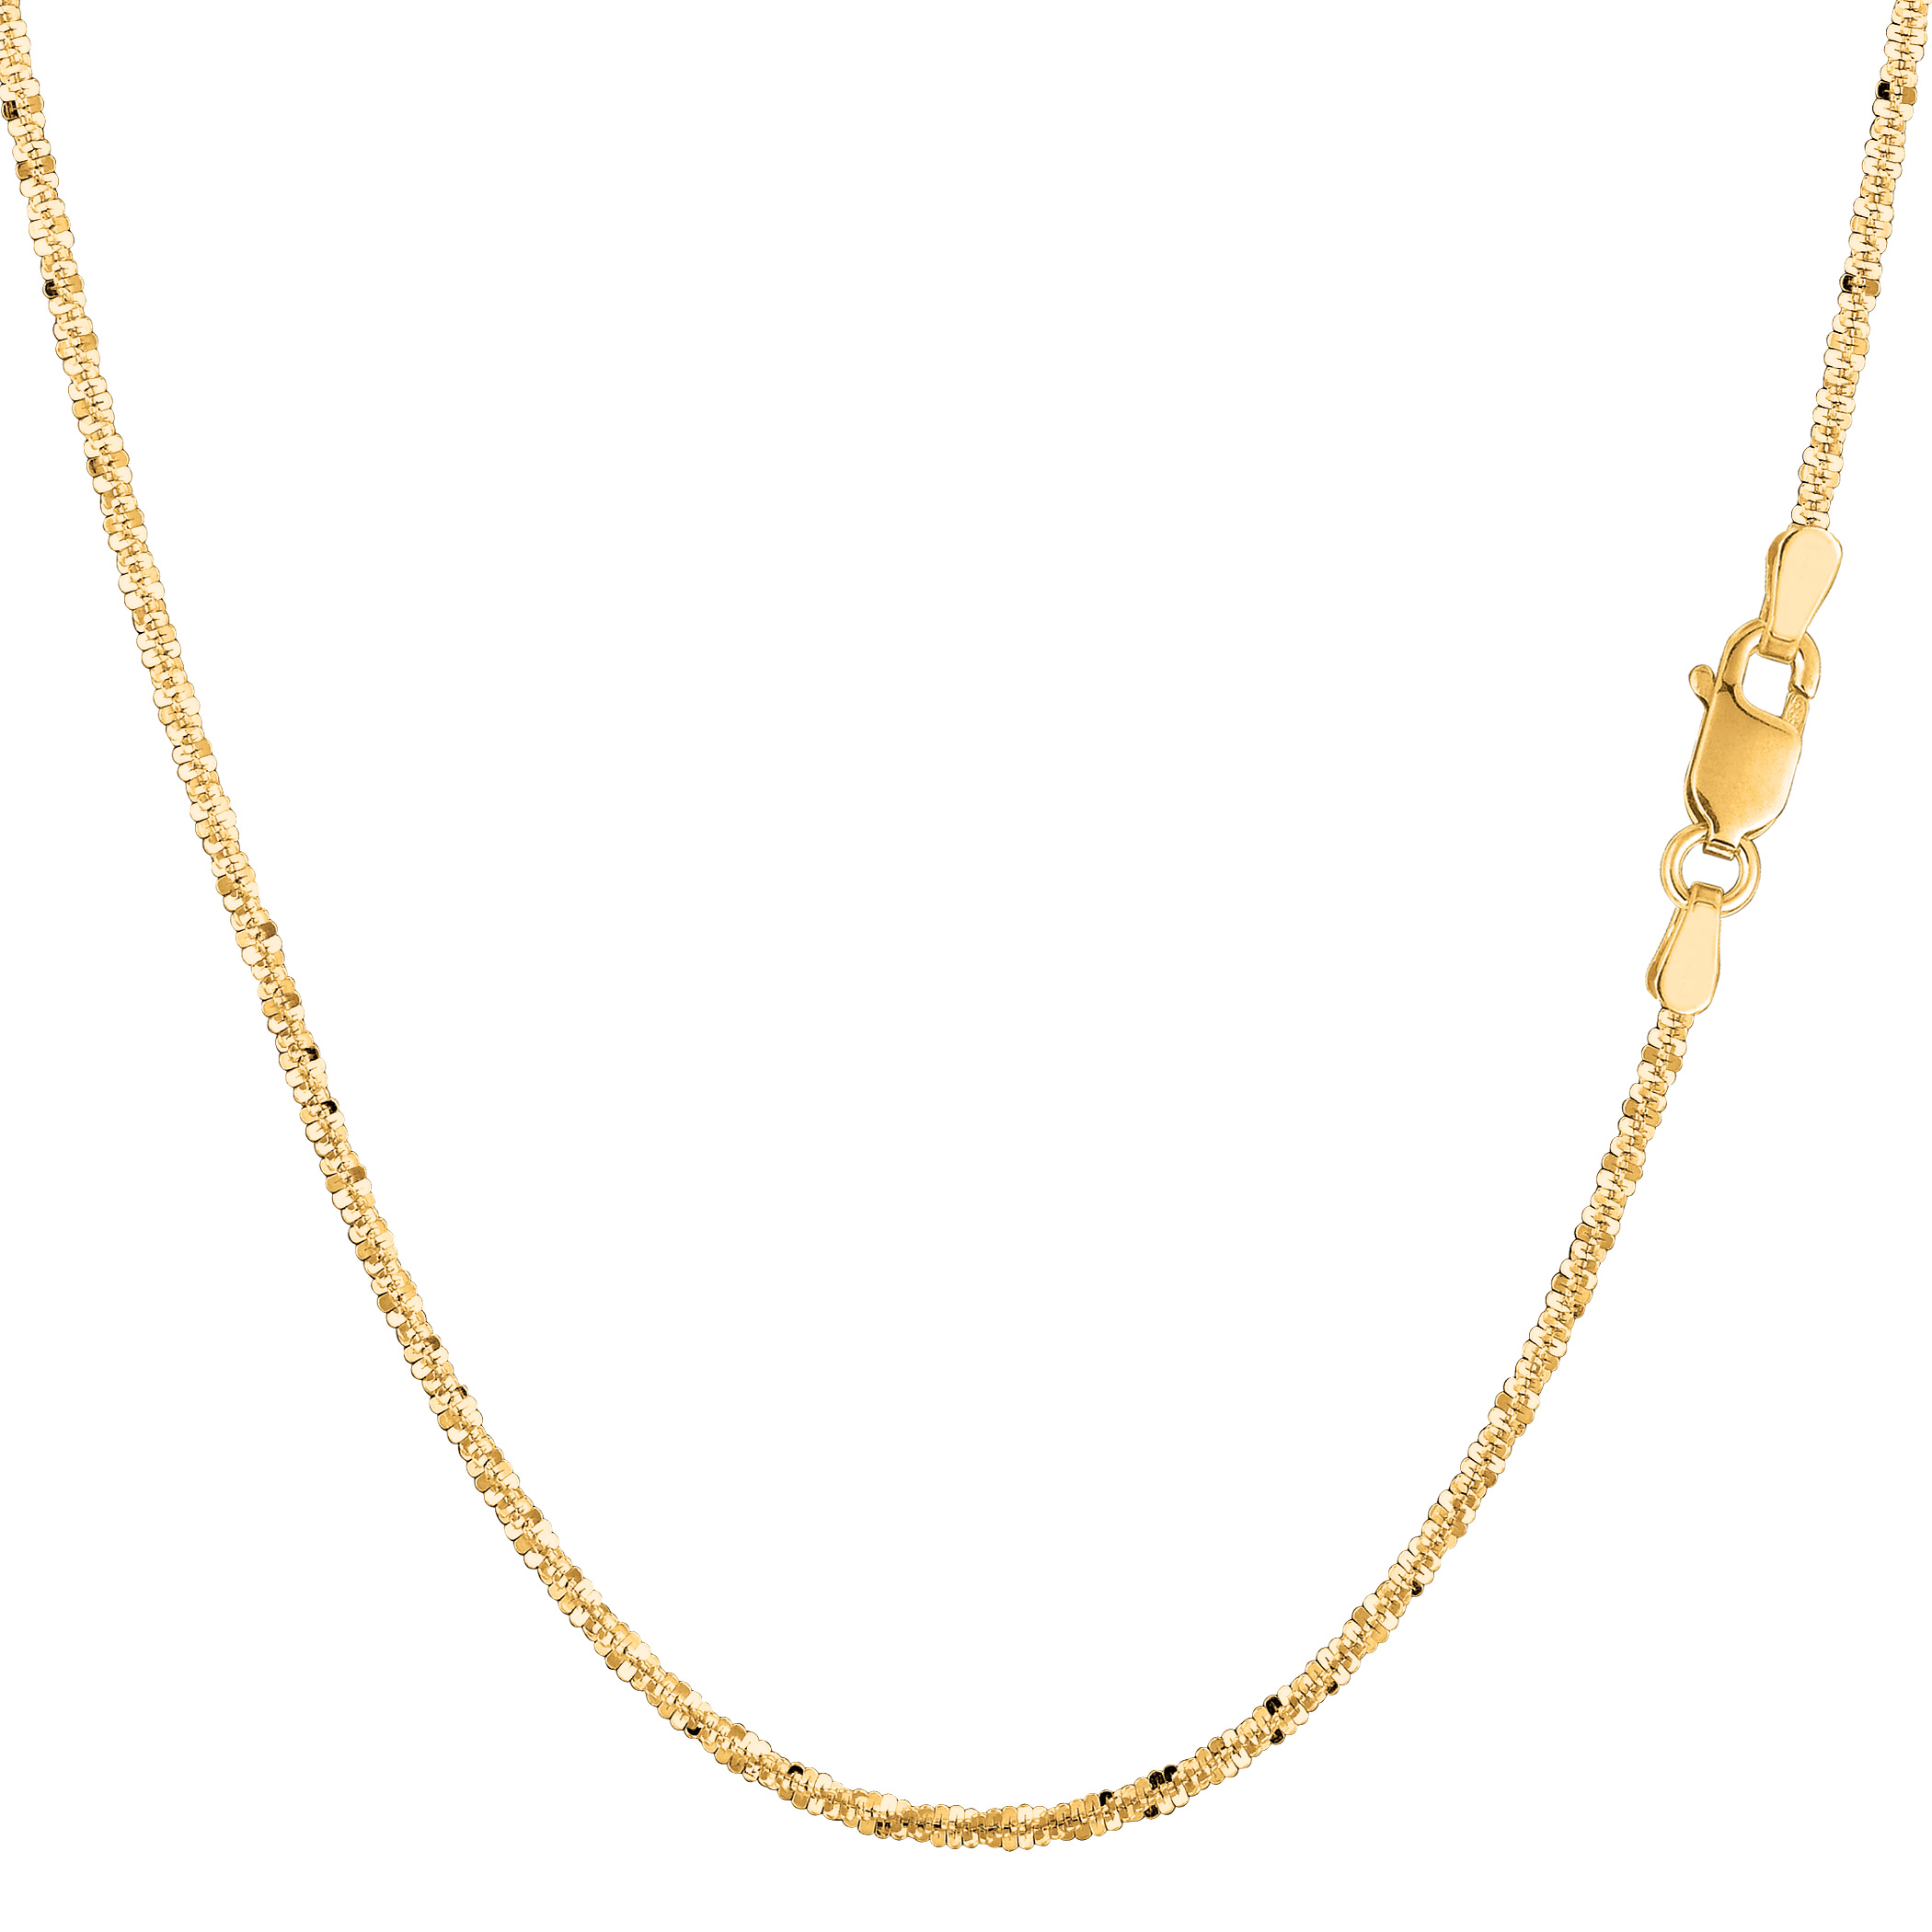 14k Yellow Gold Sparkle Chain Bracelet, 1.5mm, 7″